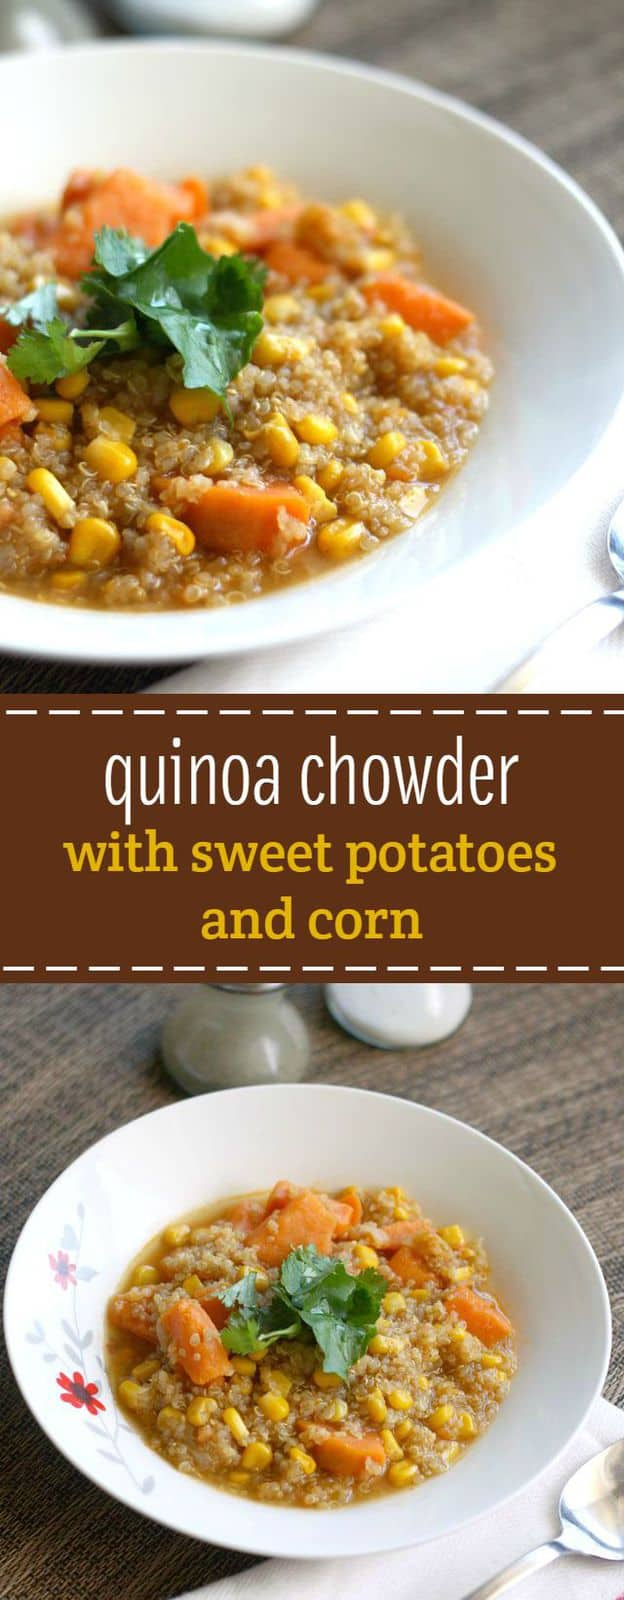 Hearty corn and sweet potato chowder is a delicious fall and winter meal! Free of the top 8 allergens.